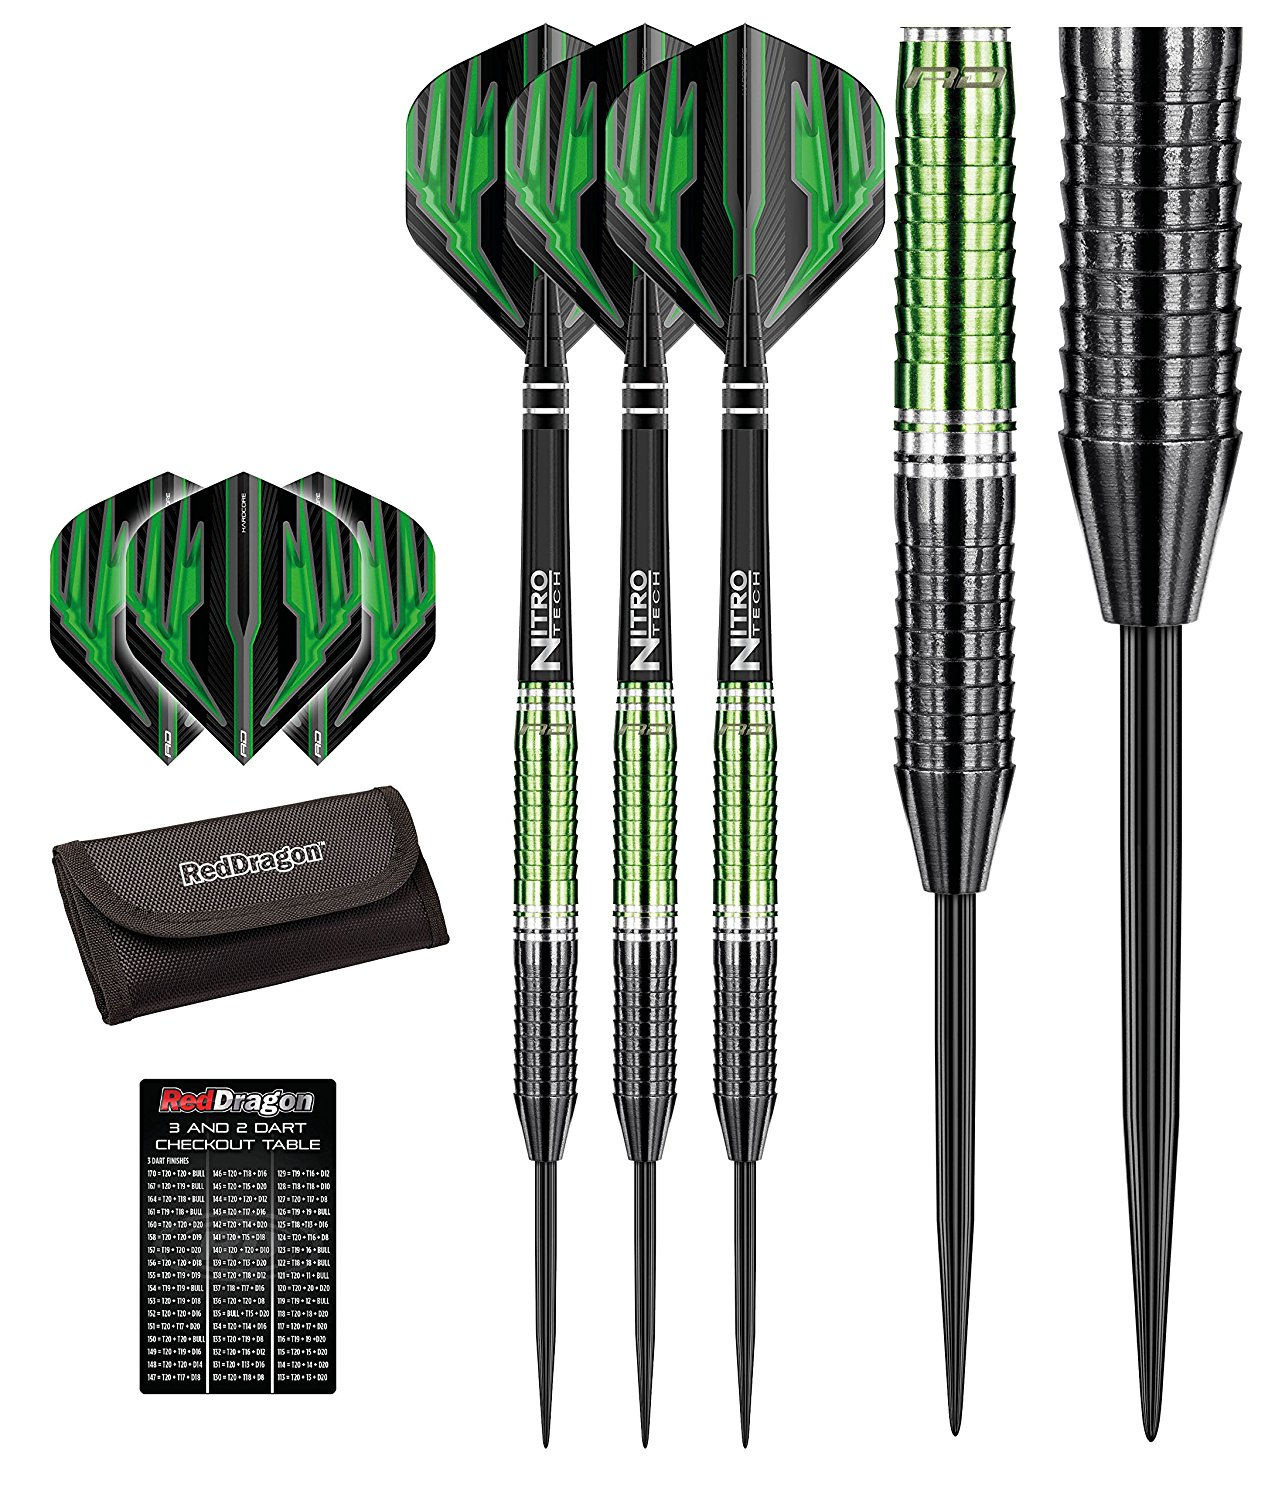 Red Dragon Razor Edge ZX-2 - 85% Tungsten Steel Darts with Flights, Shafts, Wallet & Red Dragon Checkout Card